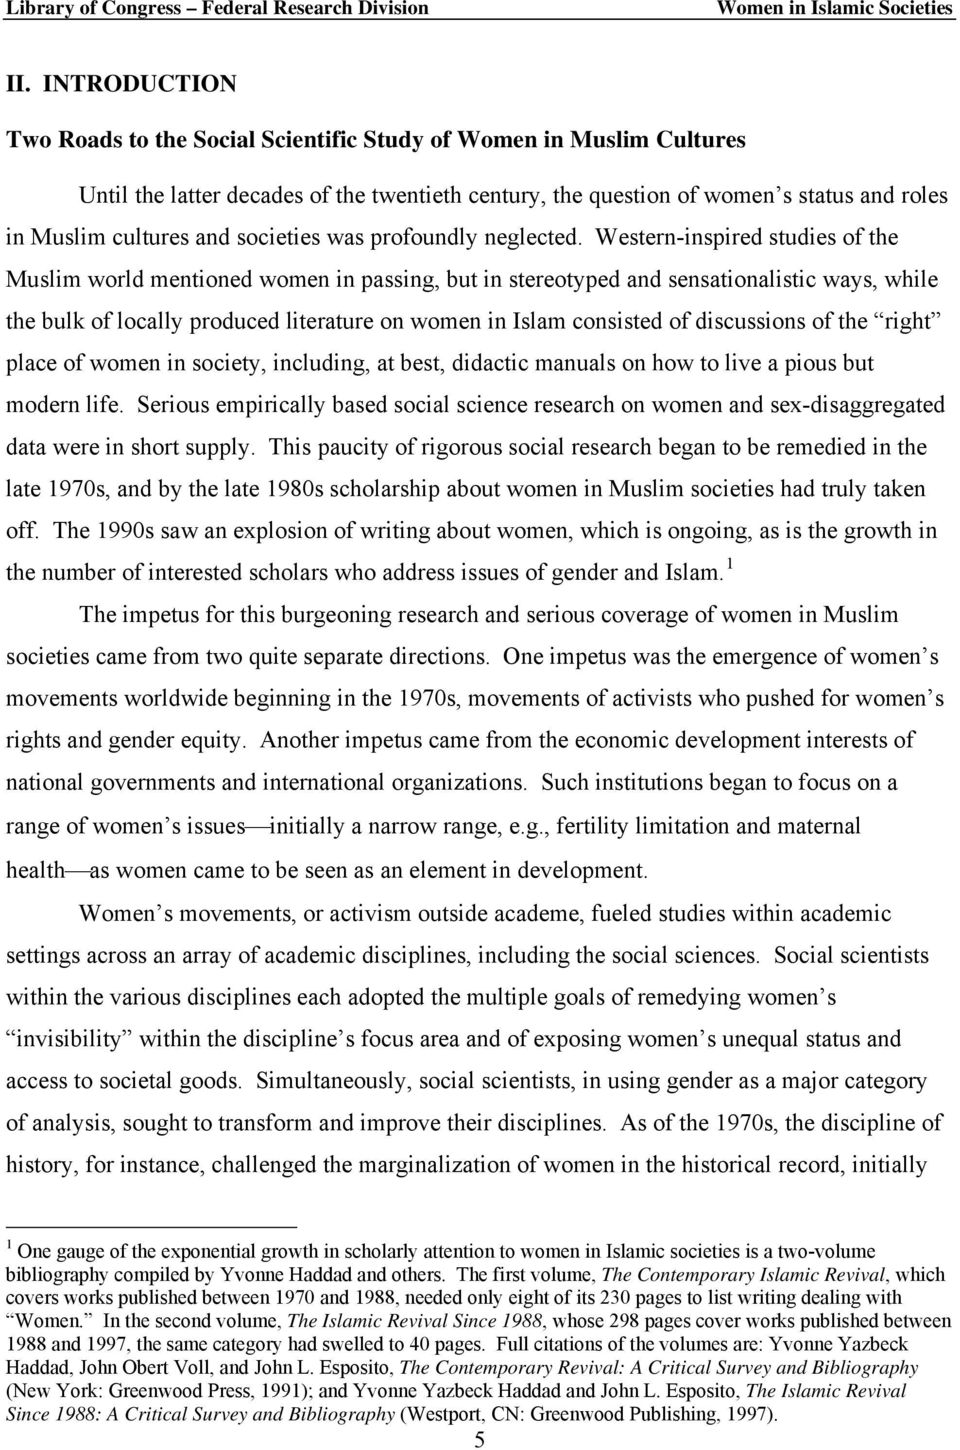 Western-inspired studies of the Muslim world mentioned women in passing, but in stereotyped and sensationalistic ways, while the bulk of locally produced literature on women in Islam consisted of